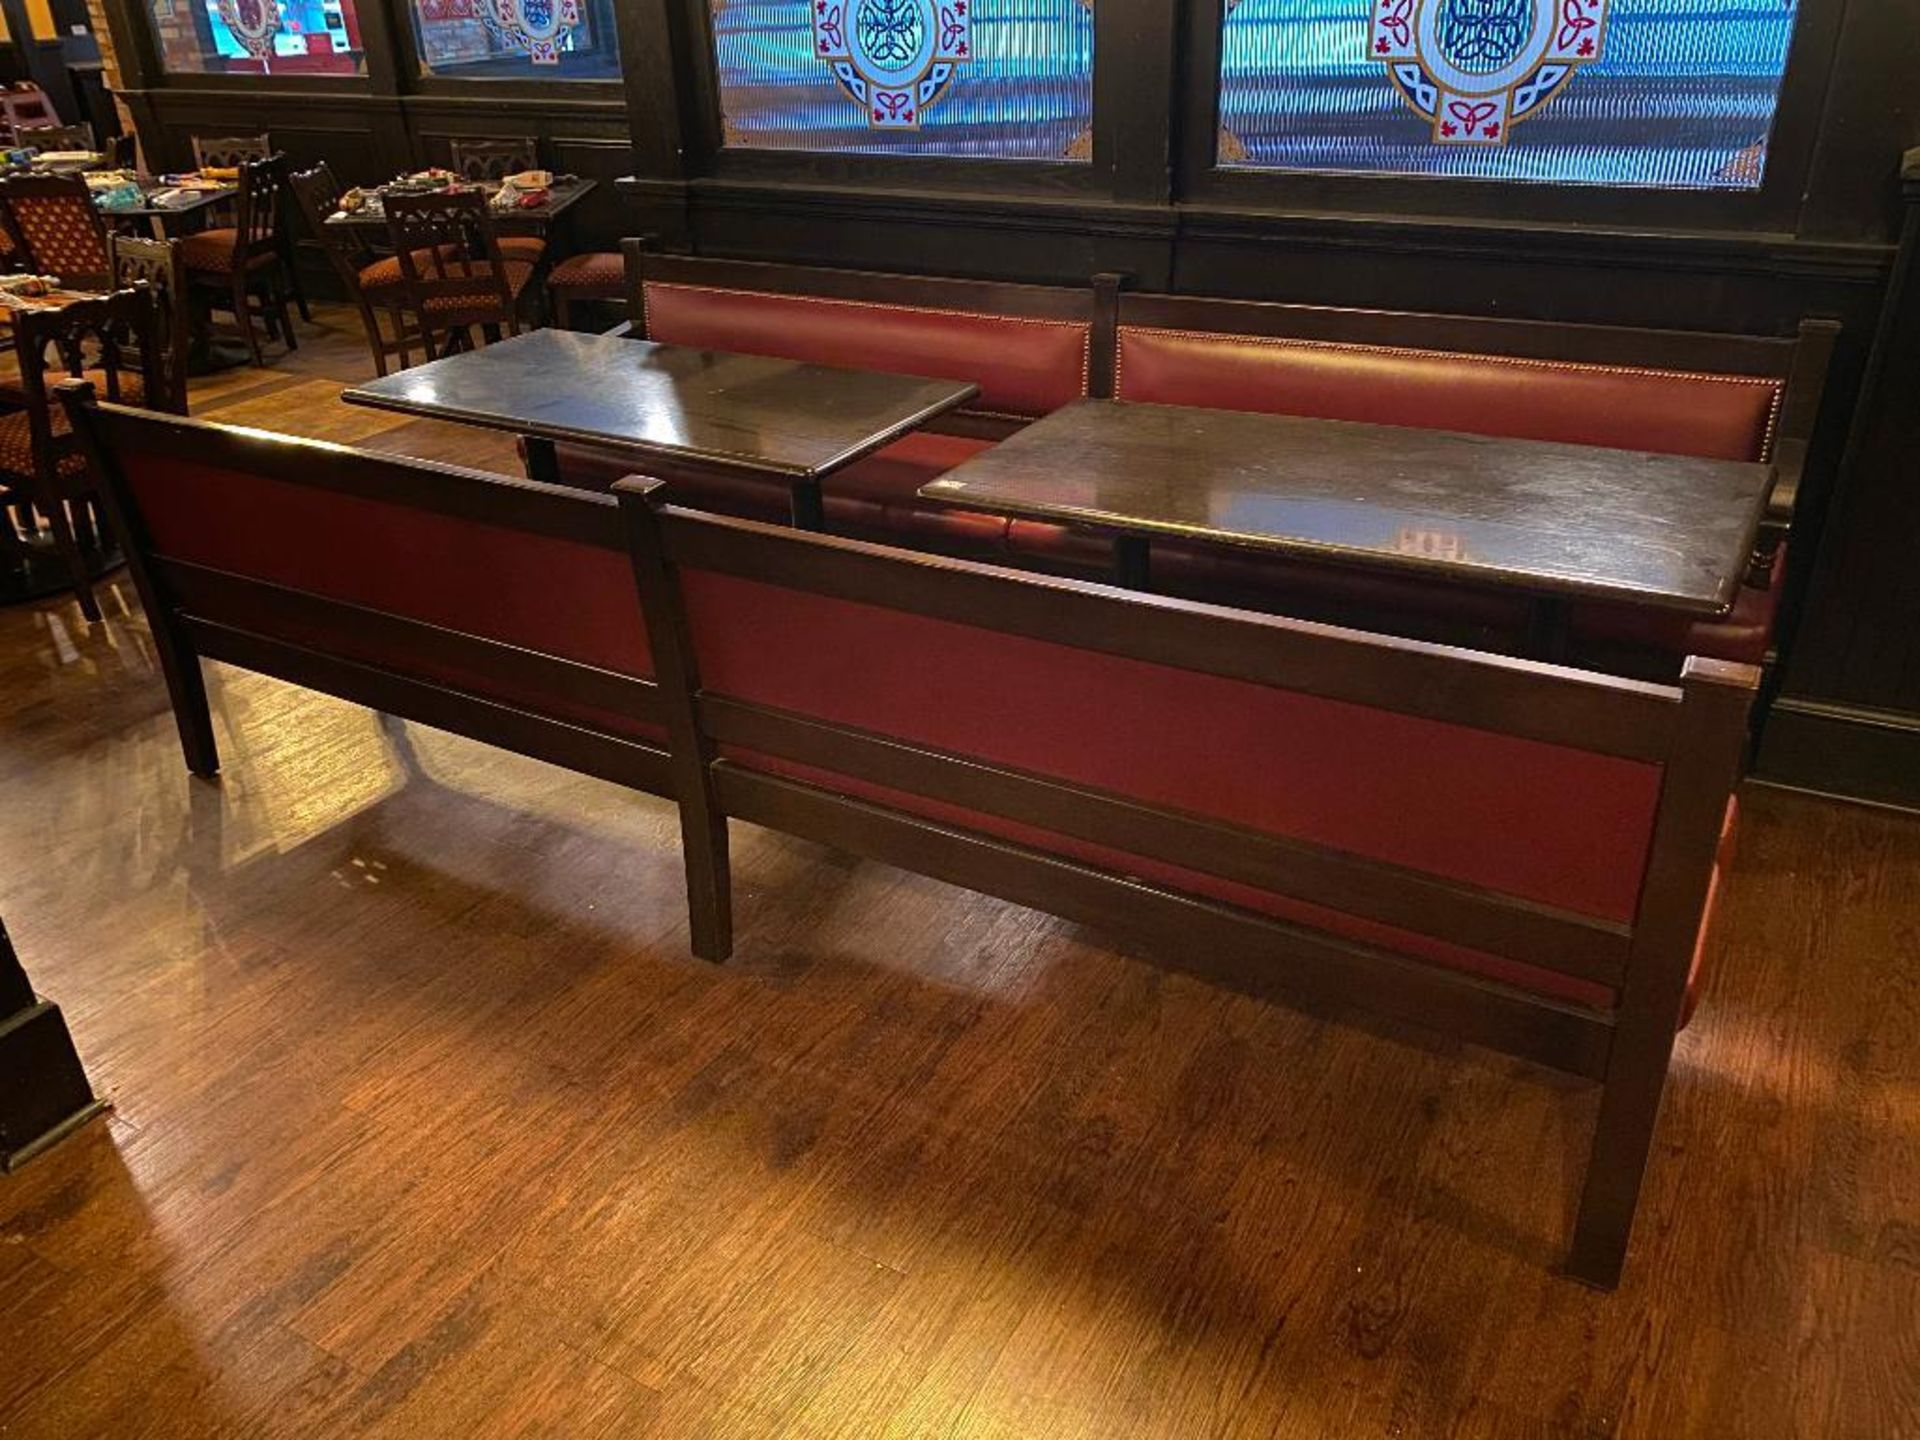 LOT OF (2) RECTANGULAR TABLE WITH (2) 10' BURGUNDY BENCHES - Image 4 of 4